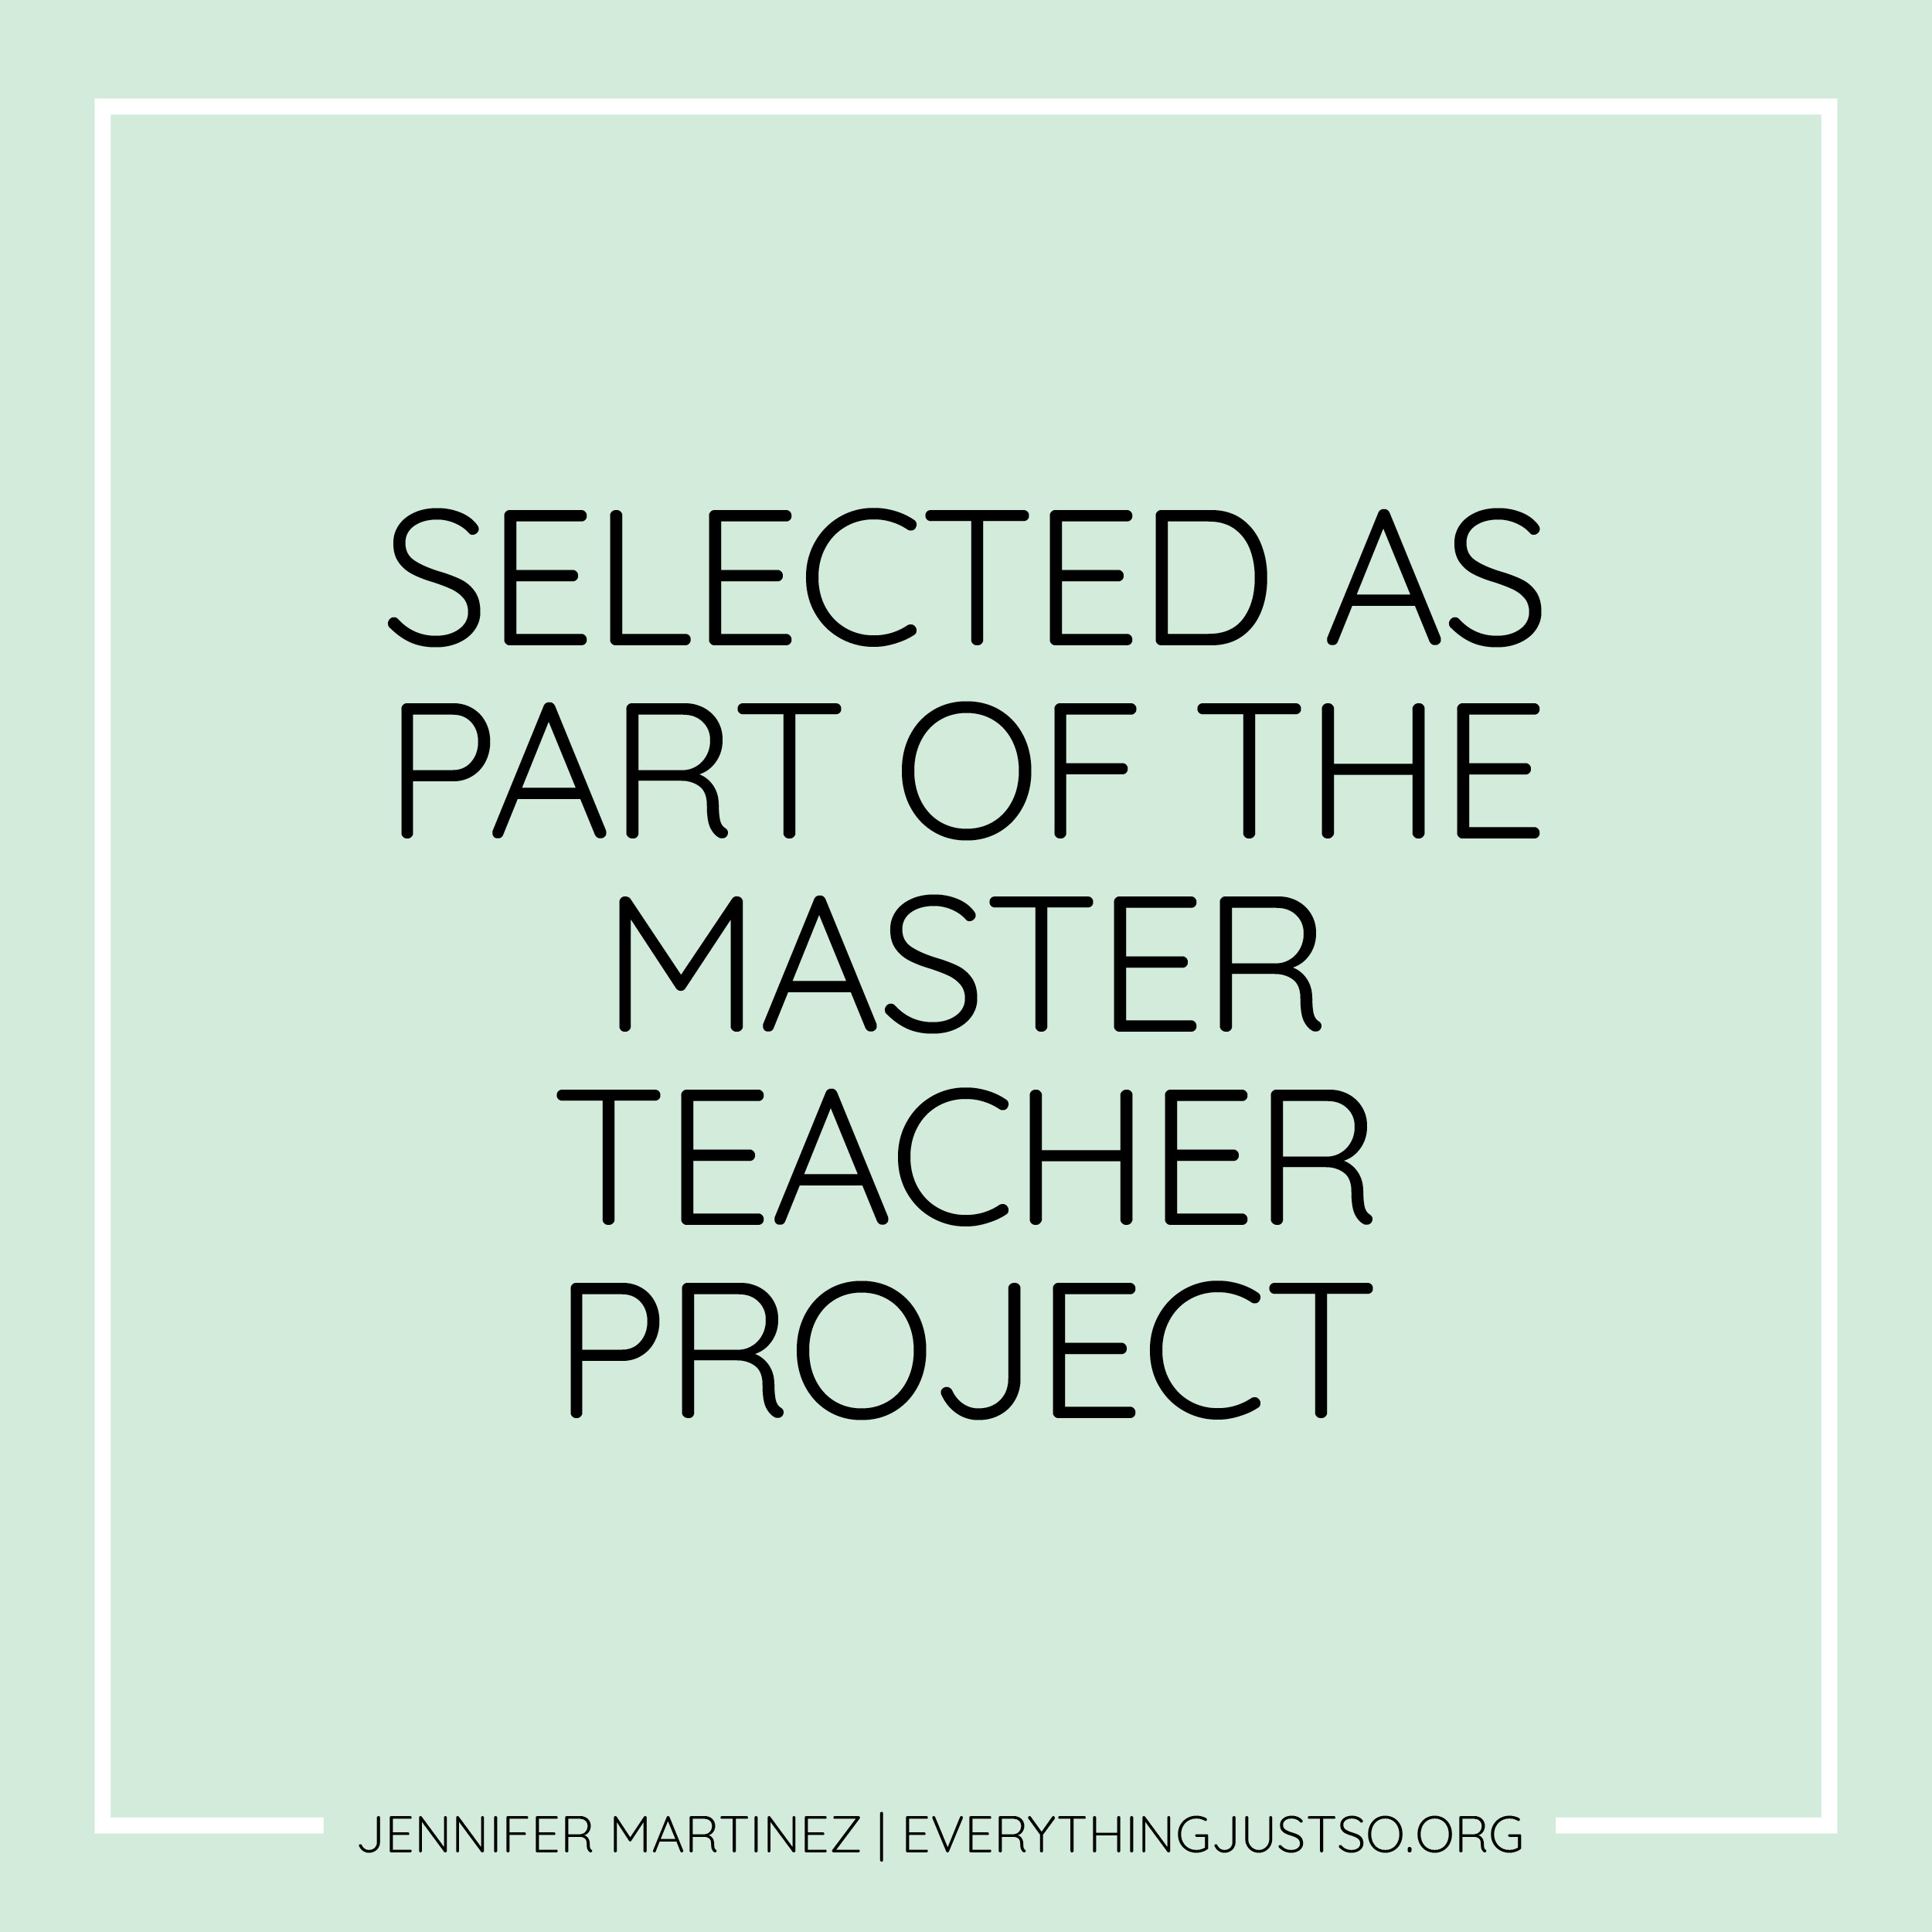 Selected as Part of the Master Teacher Project | Jennifer Martinez | everythingjustso.org